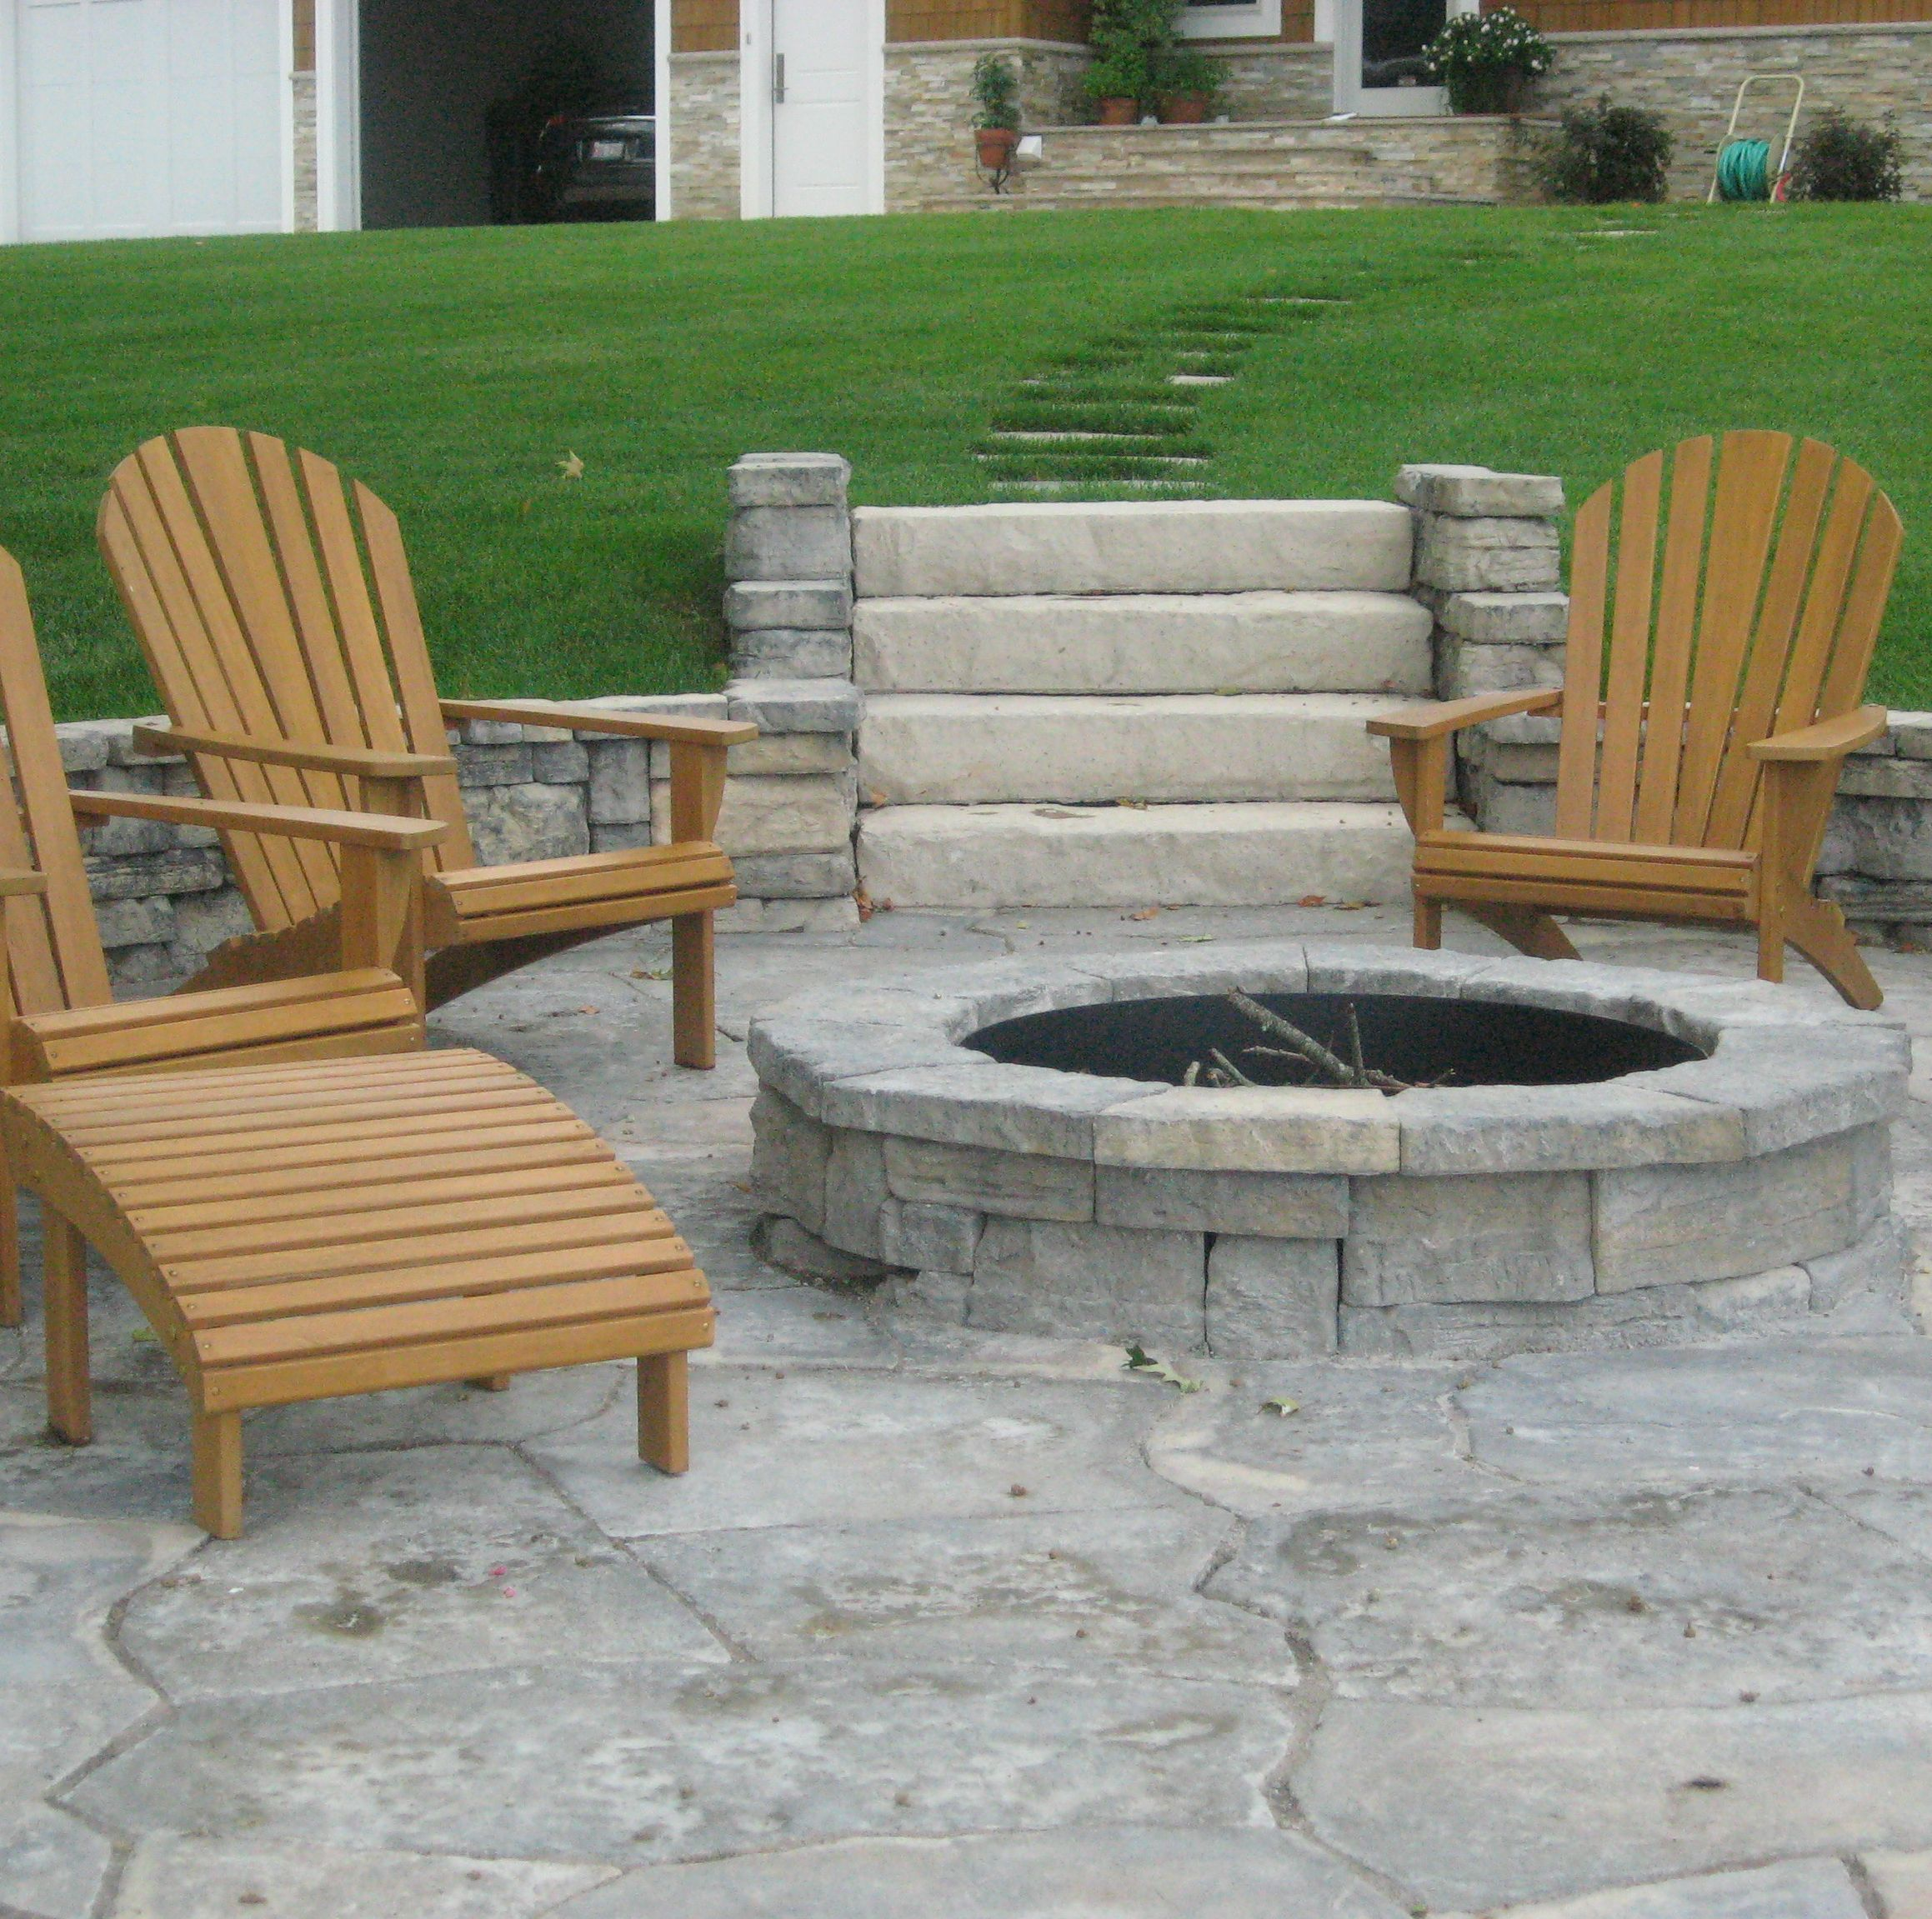 Belvedere Fire Pit with wooden patio chairs